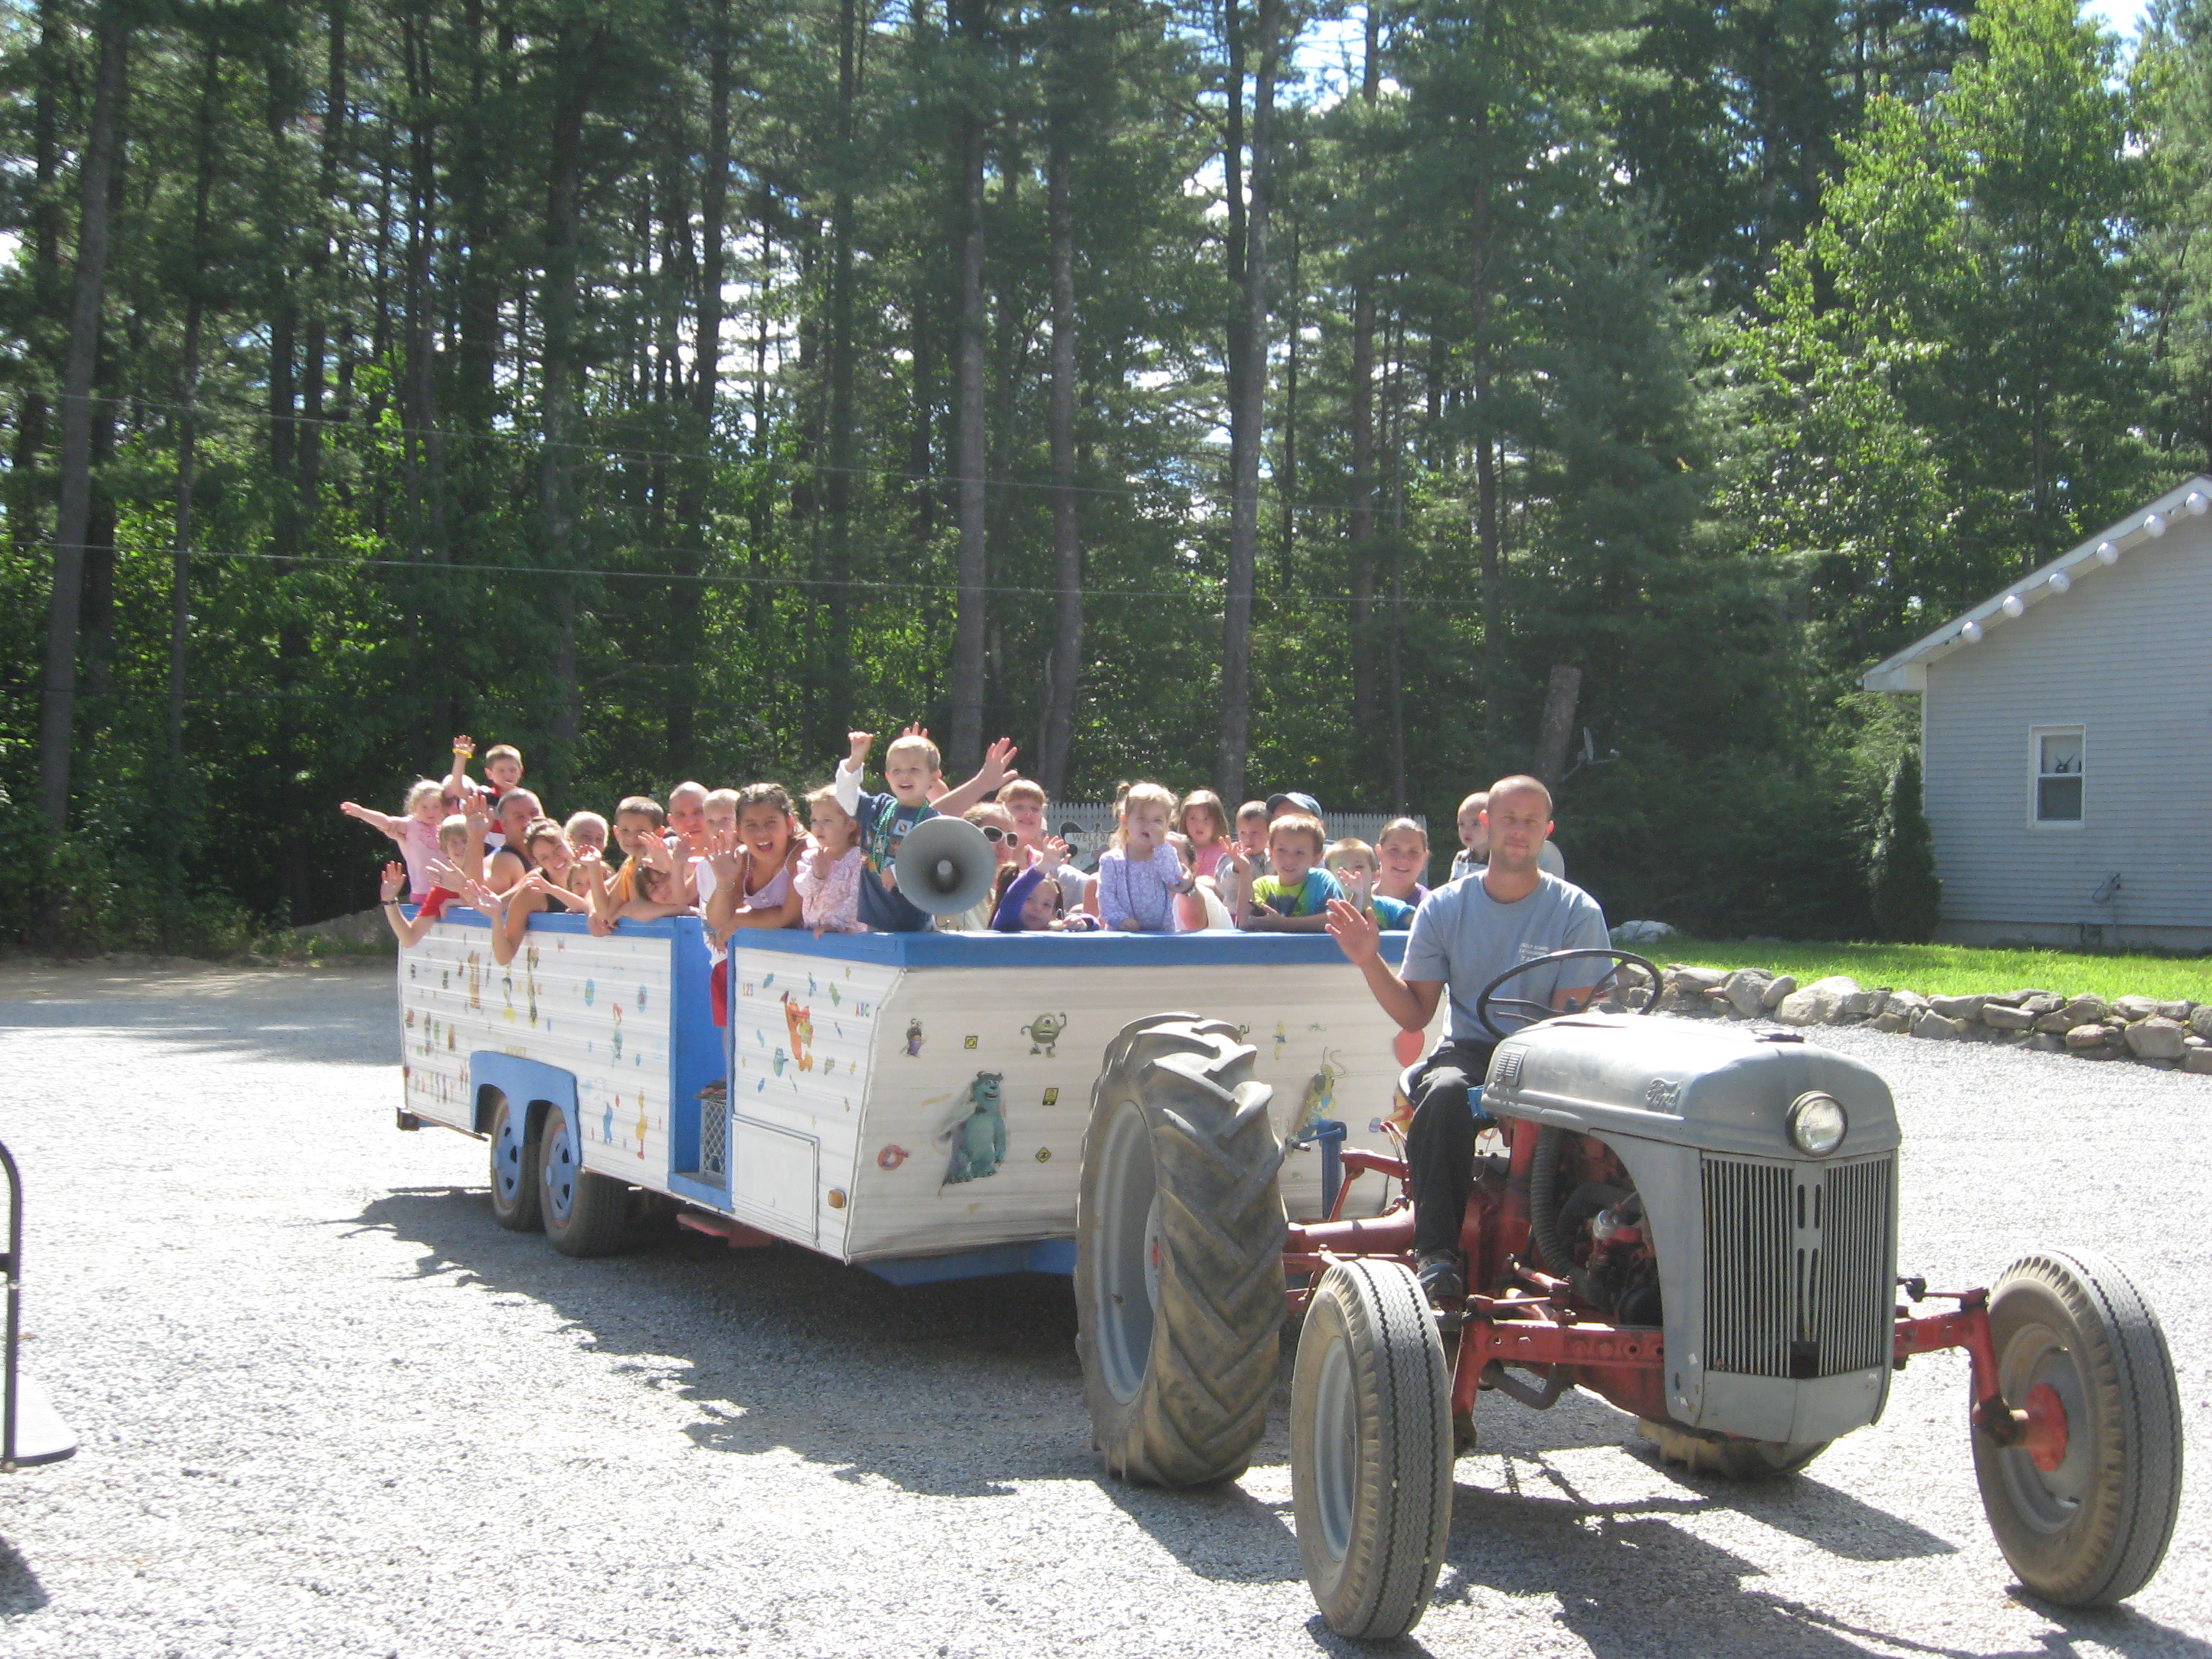 Friendly Beaver Campground - wagon ride